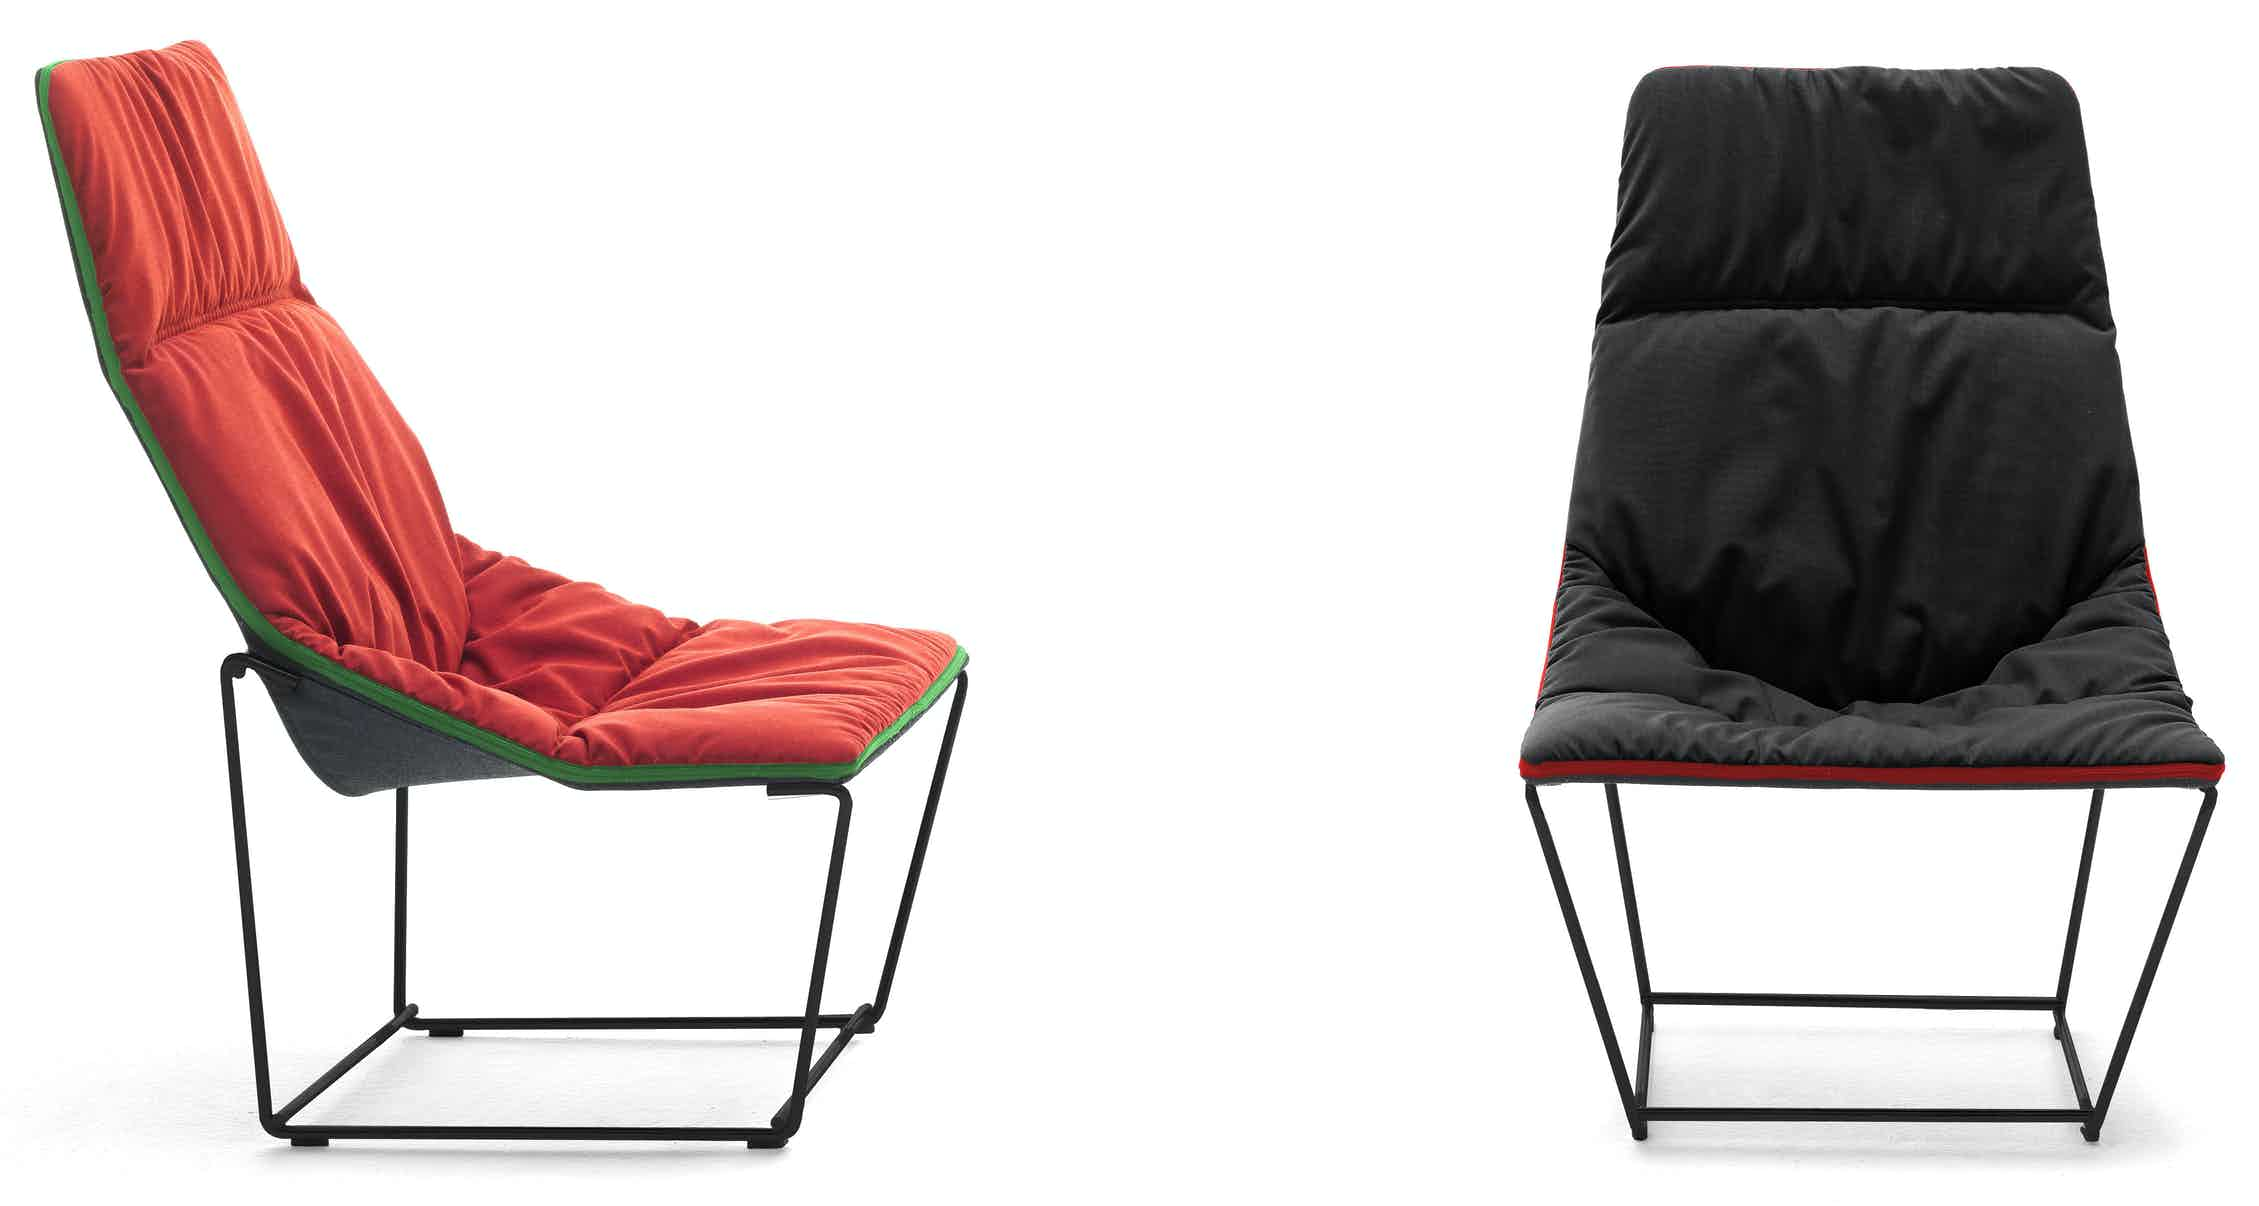 Viccarbe-Ace-armchair-by-Jean-Marie-Massaud-3